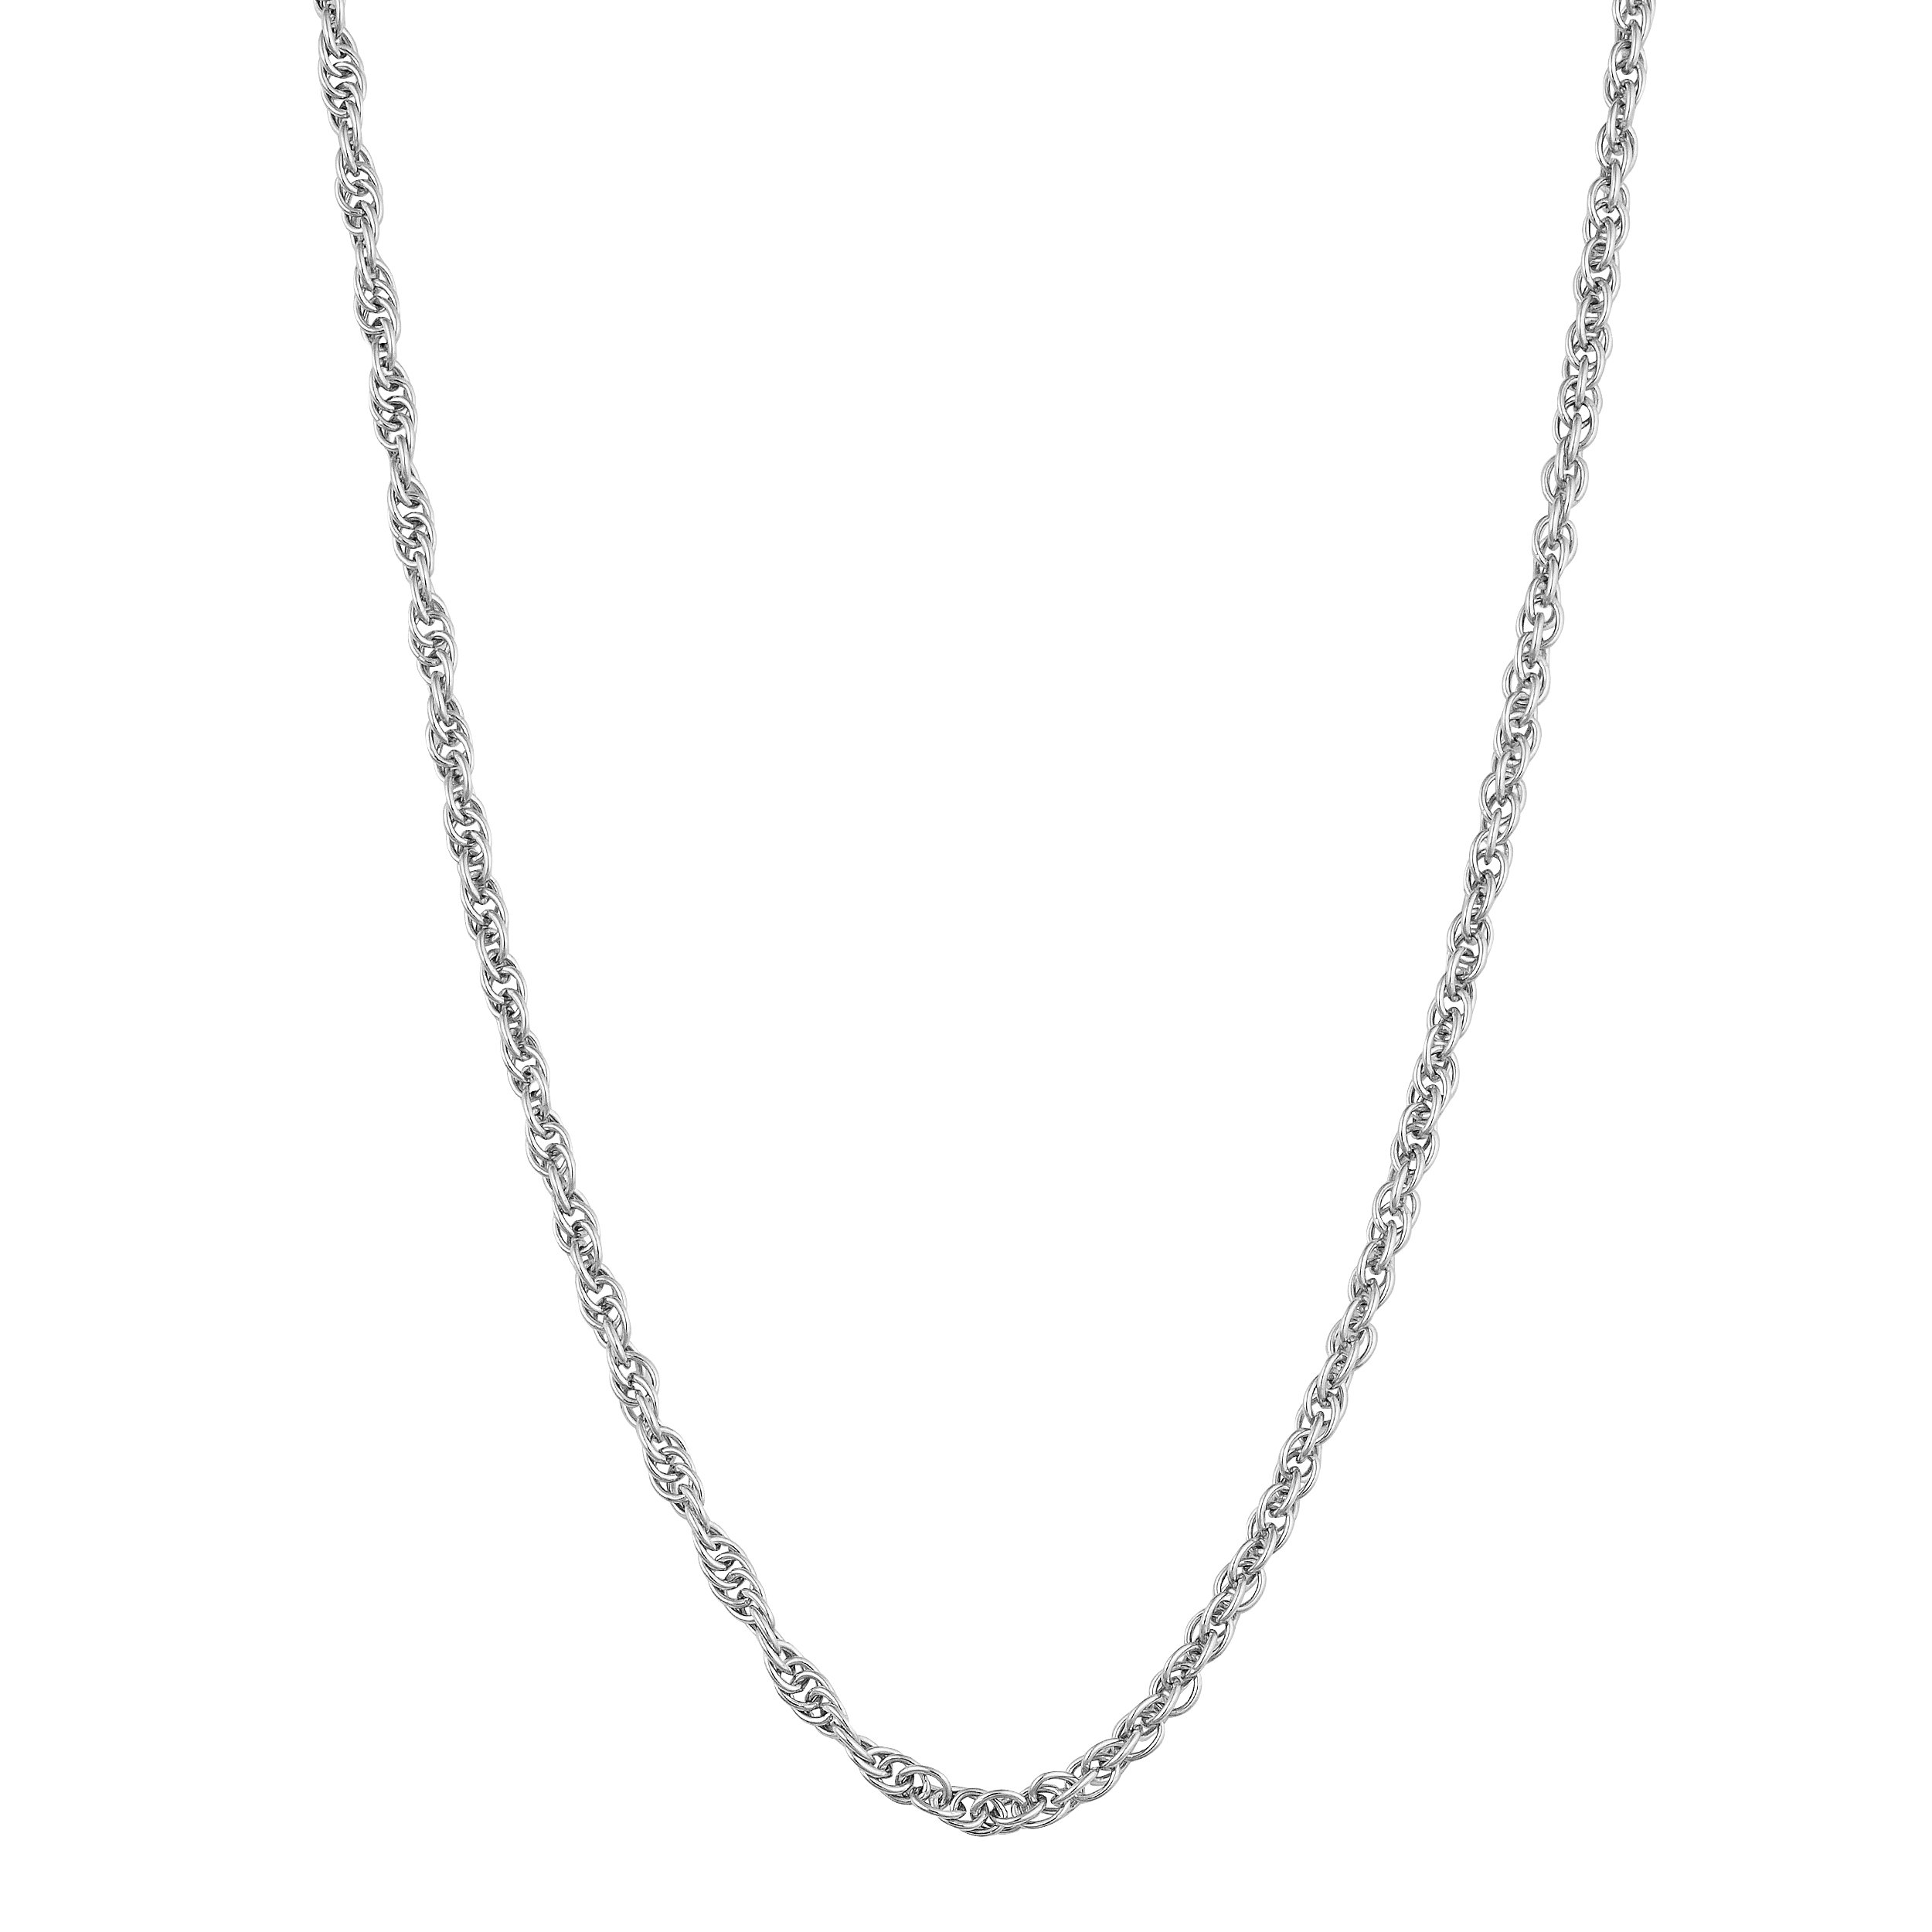 14k White Gold 1.4mm High Polish Cordina Rope Chain (18 inch)